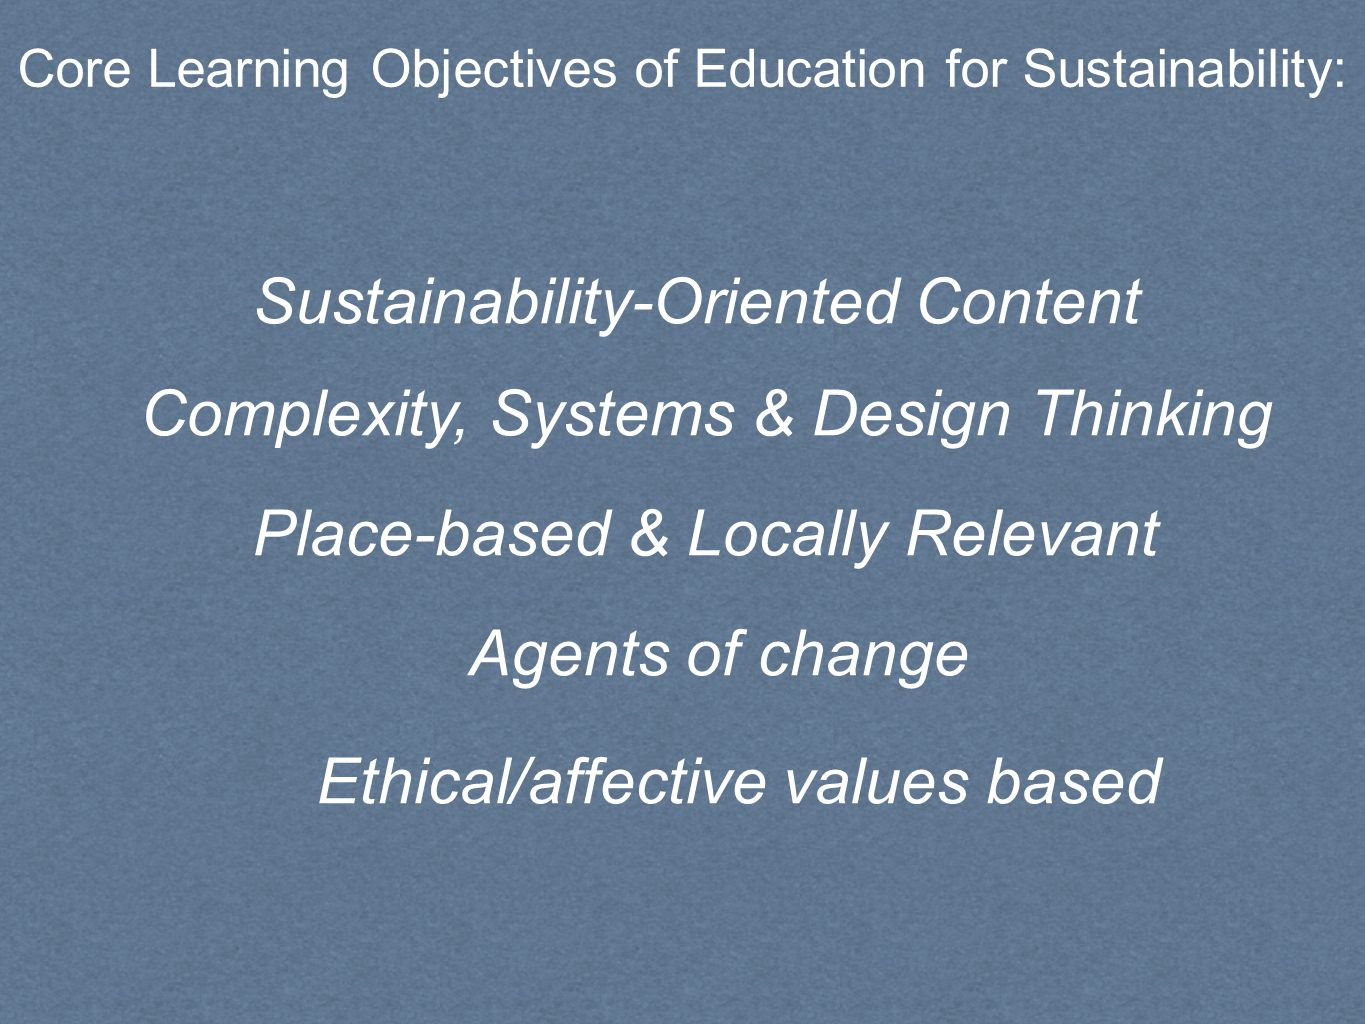 Complexity, Systems & Design Thinking Place-based & Locally Relevant Agents of change Sustainability-Oriented Content Core Learning Objectives of Education for Sustainability: Ethical/affective values based